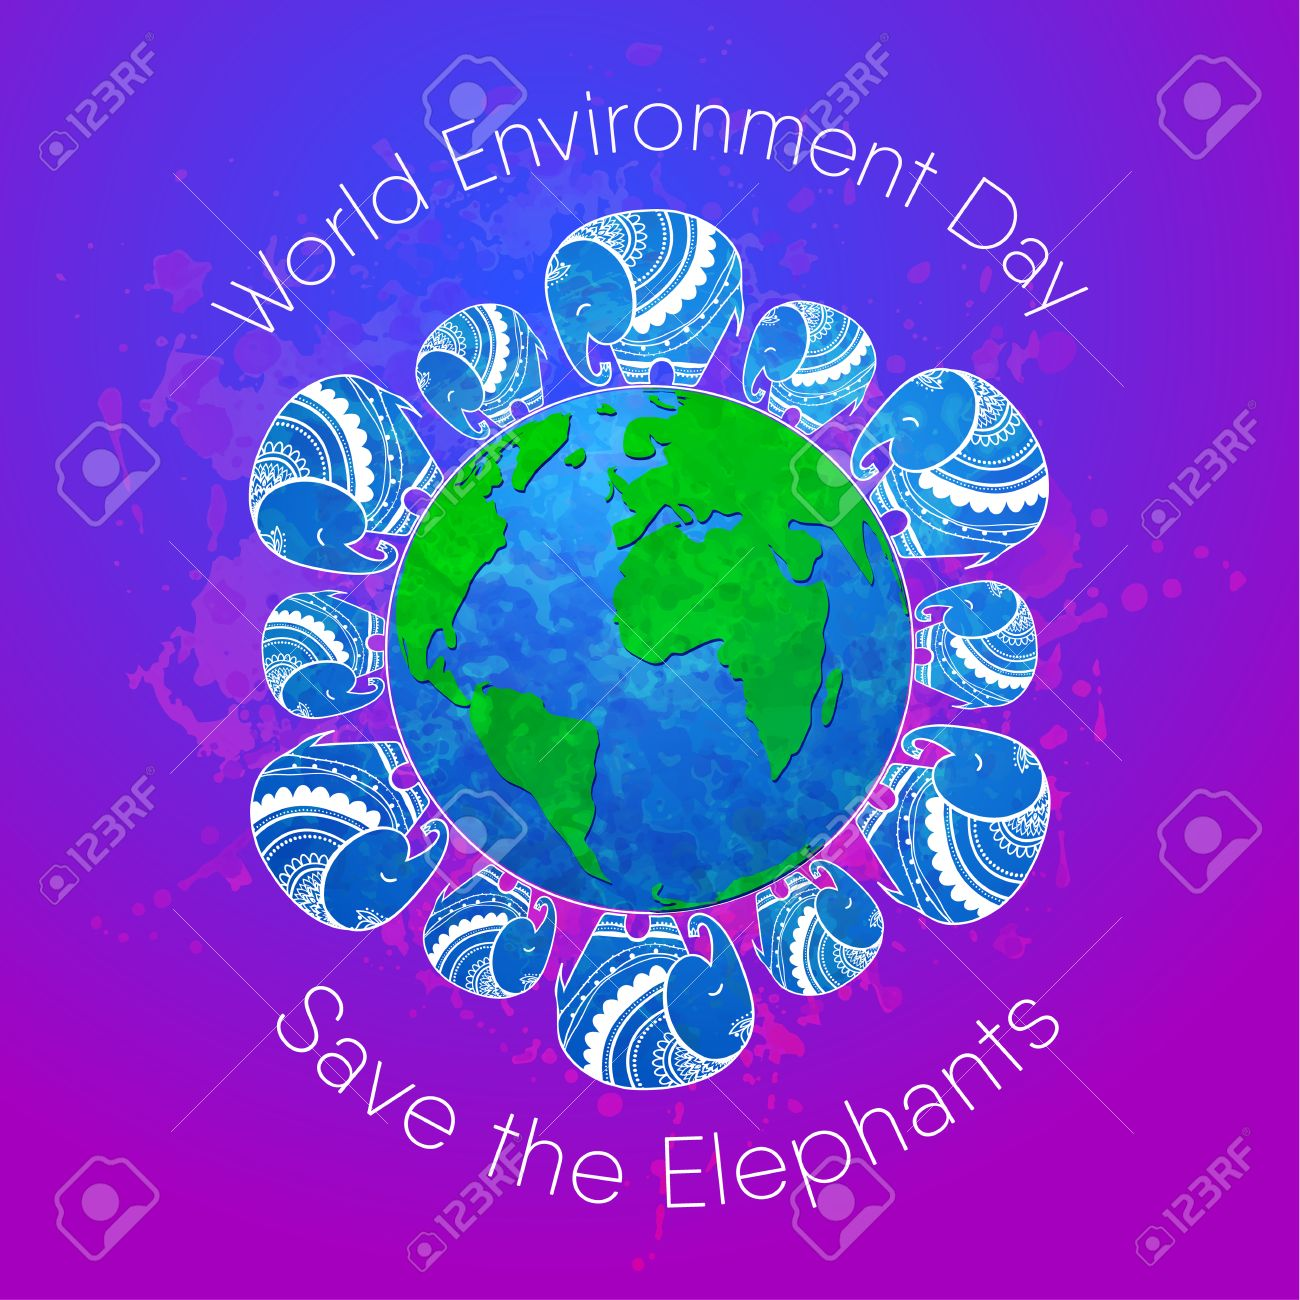 Poster design environment - World Environment Day Concept Design For Banner Print Poster Greeting Card